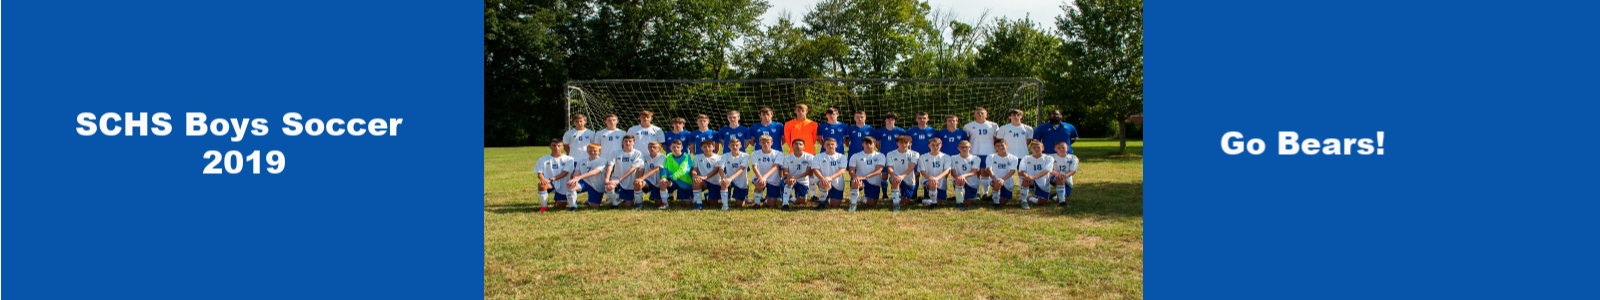 SCHS Boys Soccer Team 2019